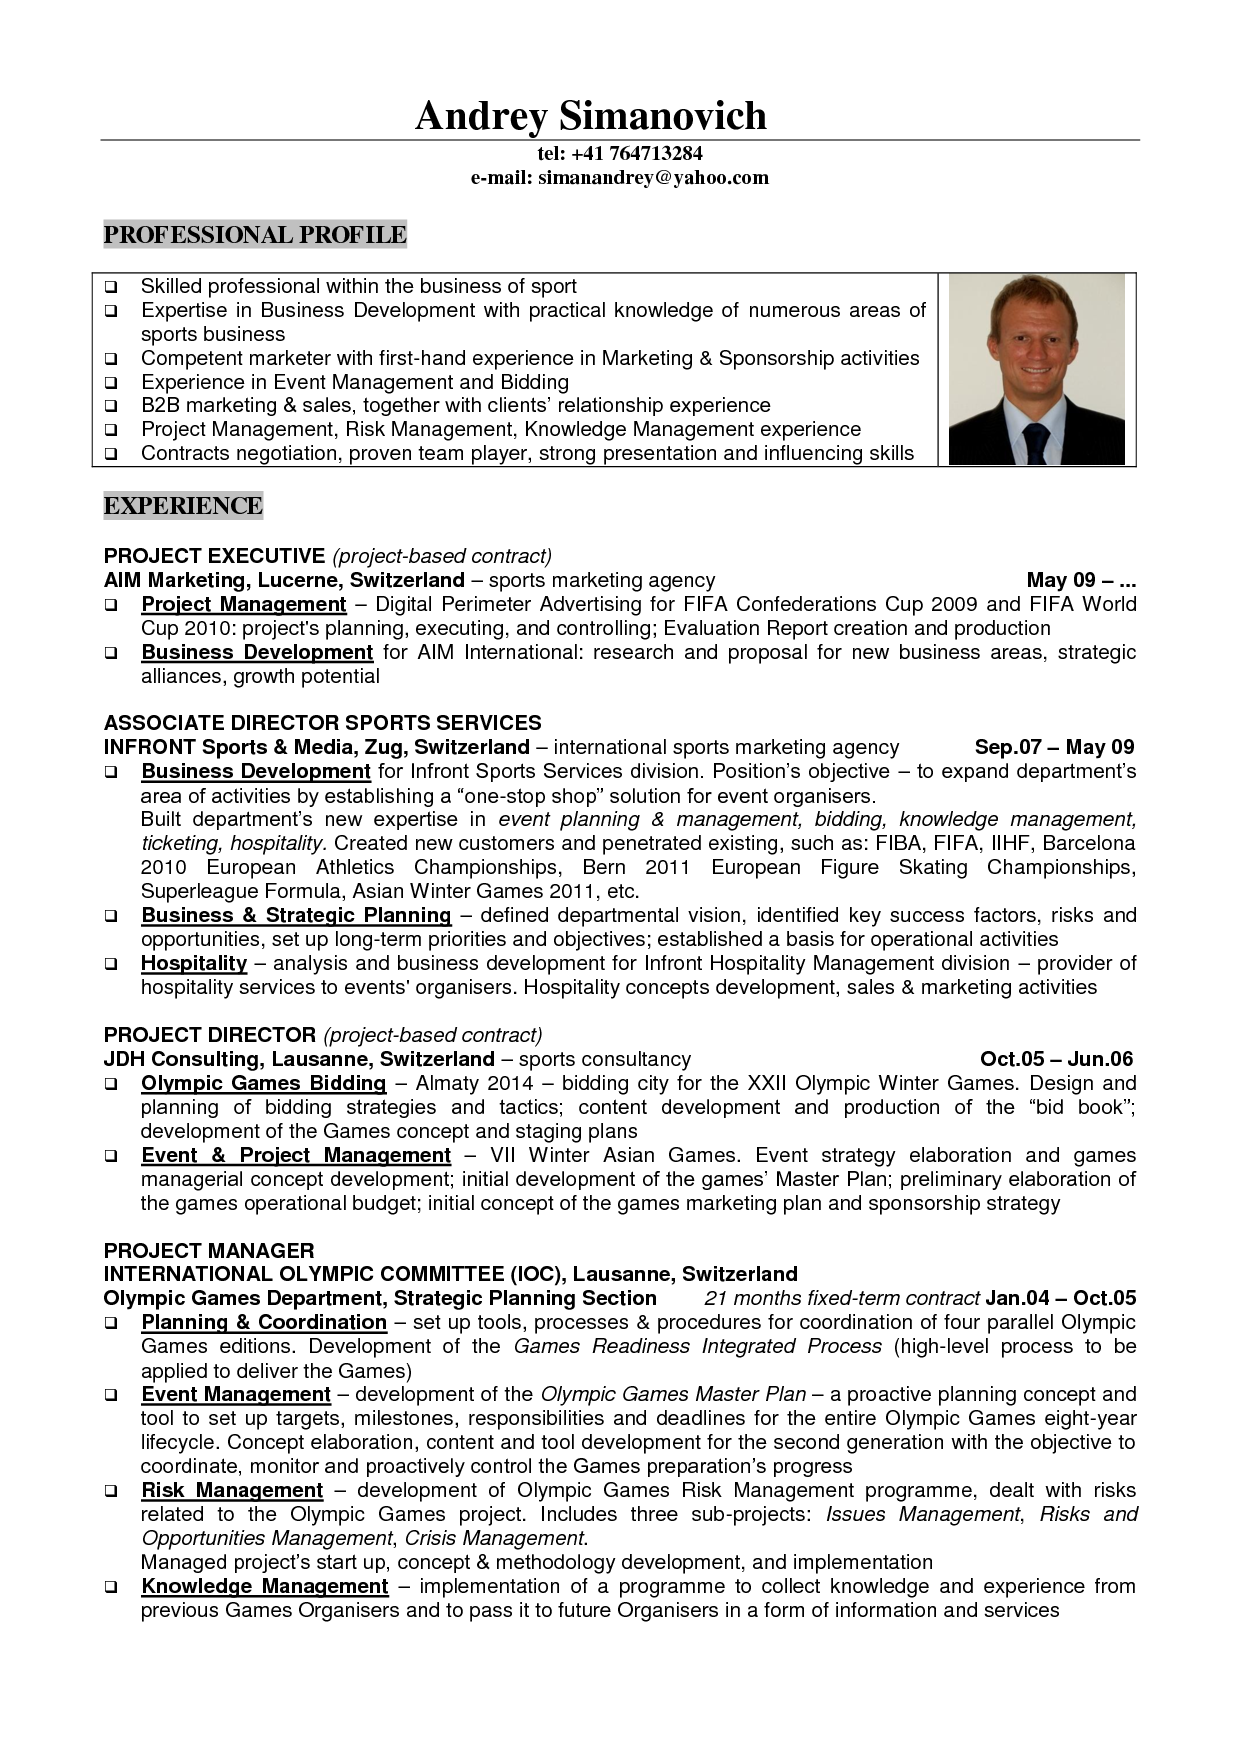 Student Athlete Resume Marketing Resume Template Business Development Samples Event